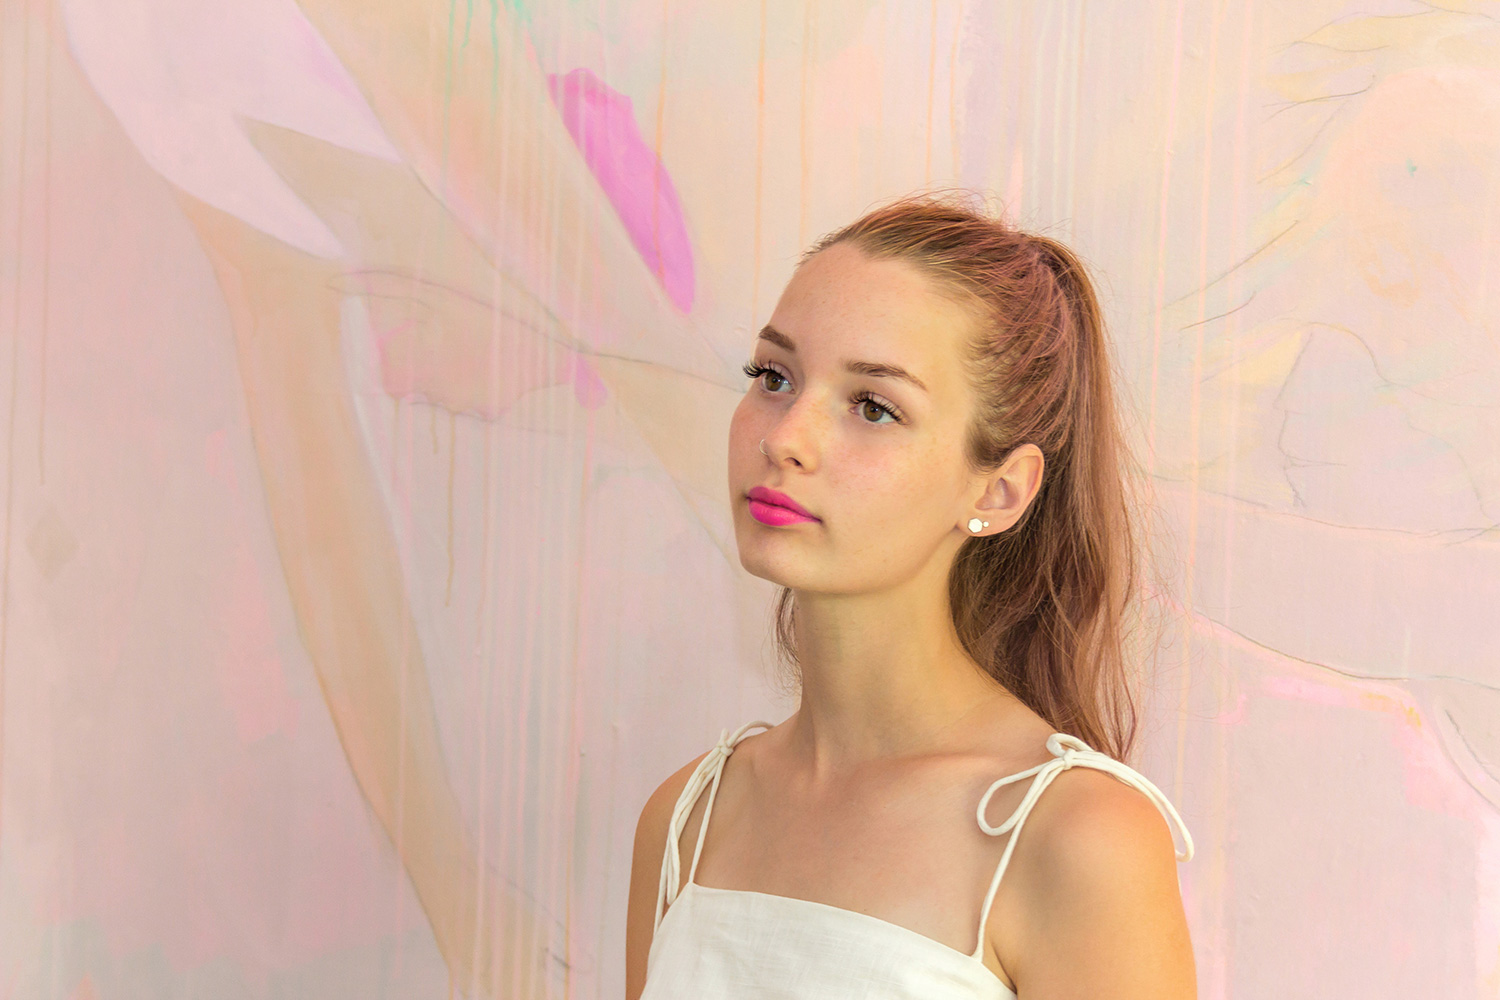 Dreamy portrait of young model with pastel hair, her bright pink lipstick pops against the soft colors of the abstract mural behind her.